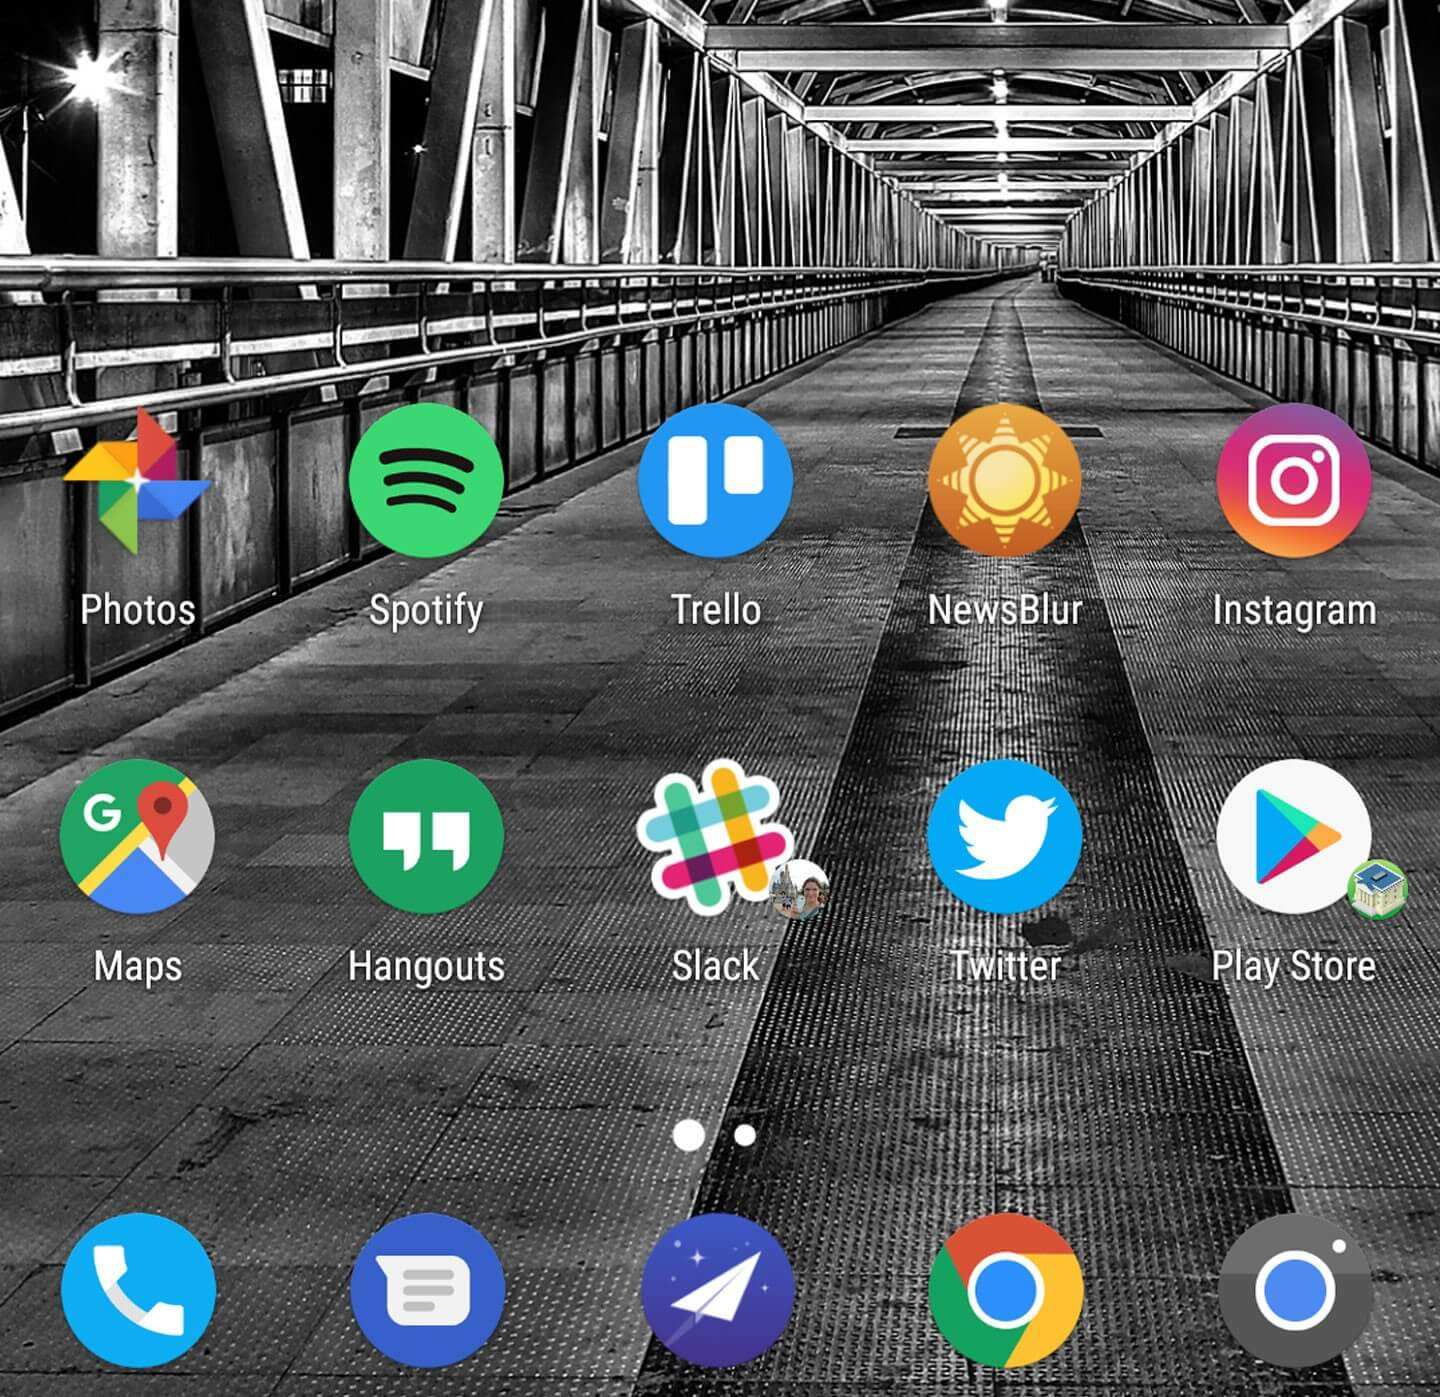 Download Nova Launcher To Enjoy The Android O Notification Dot Feature Now